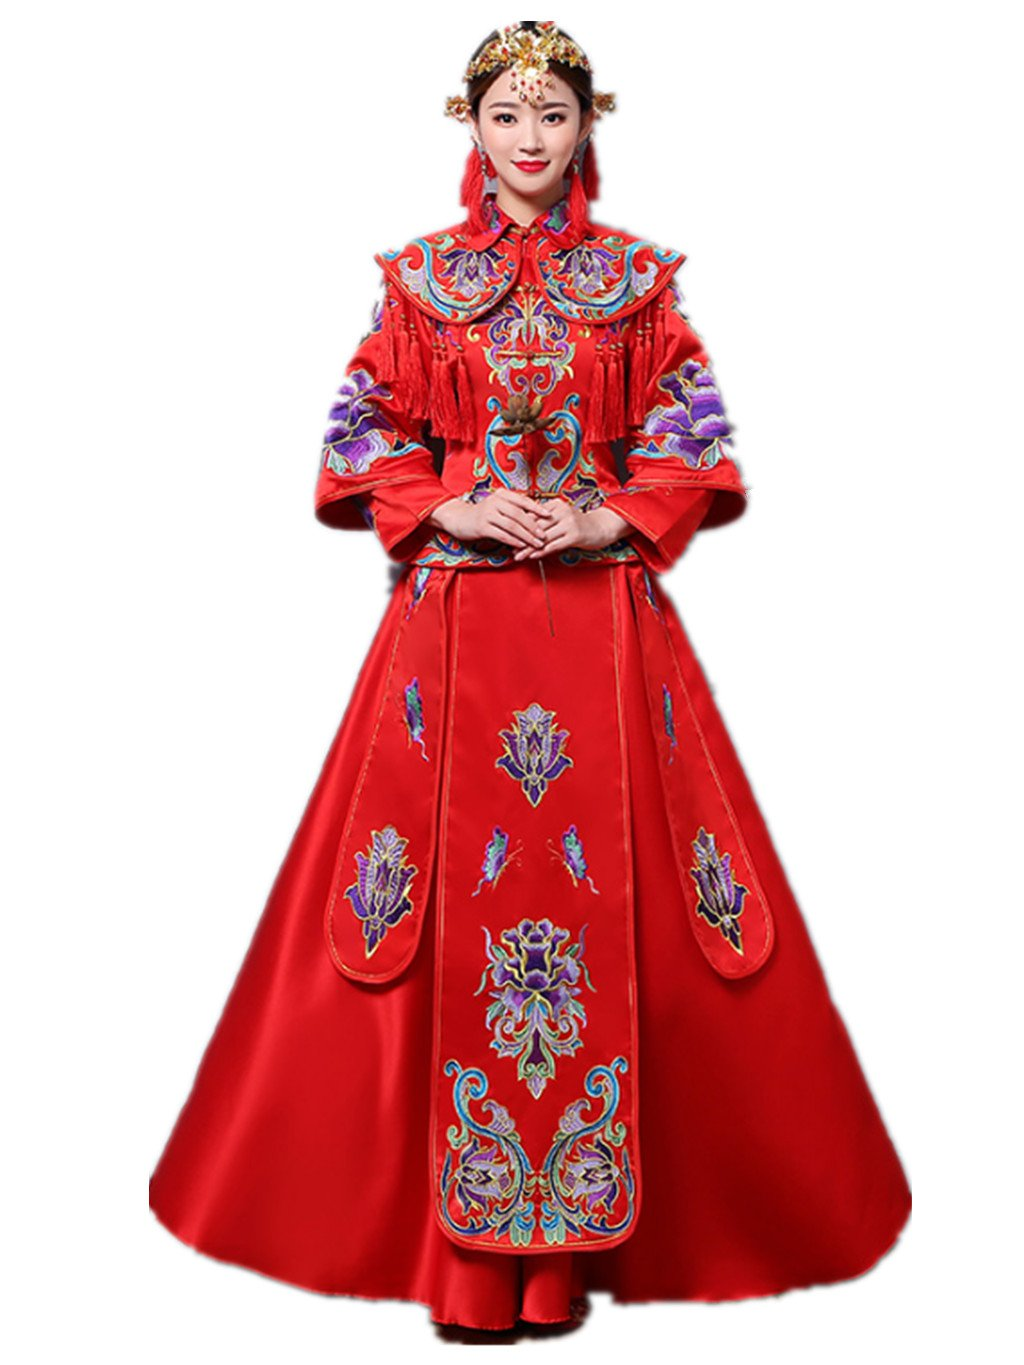 Stereo Embroideries High Density Embroideries Show Wo Dress Chinese Wedding Dress Traditional Bride Wedding Dress Wedding Cheongsam Tang Suits Full Dress